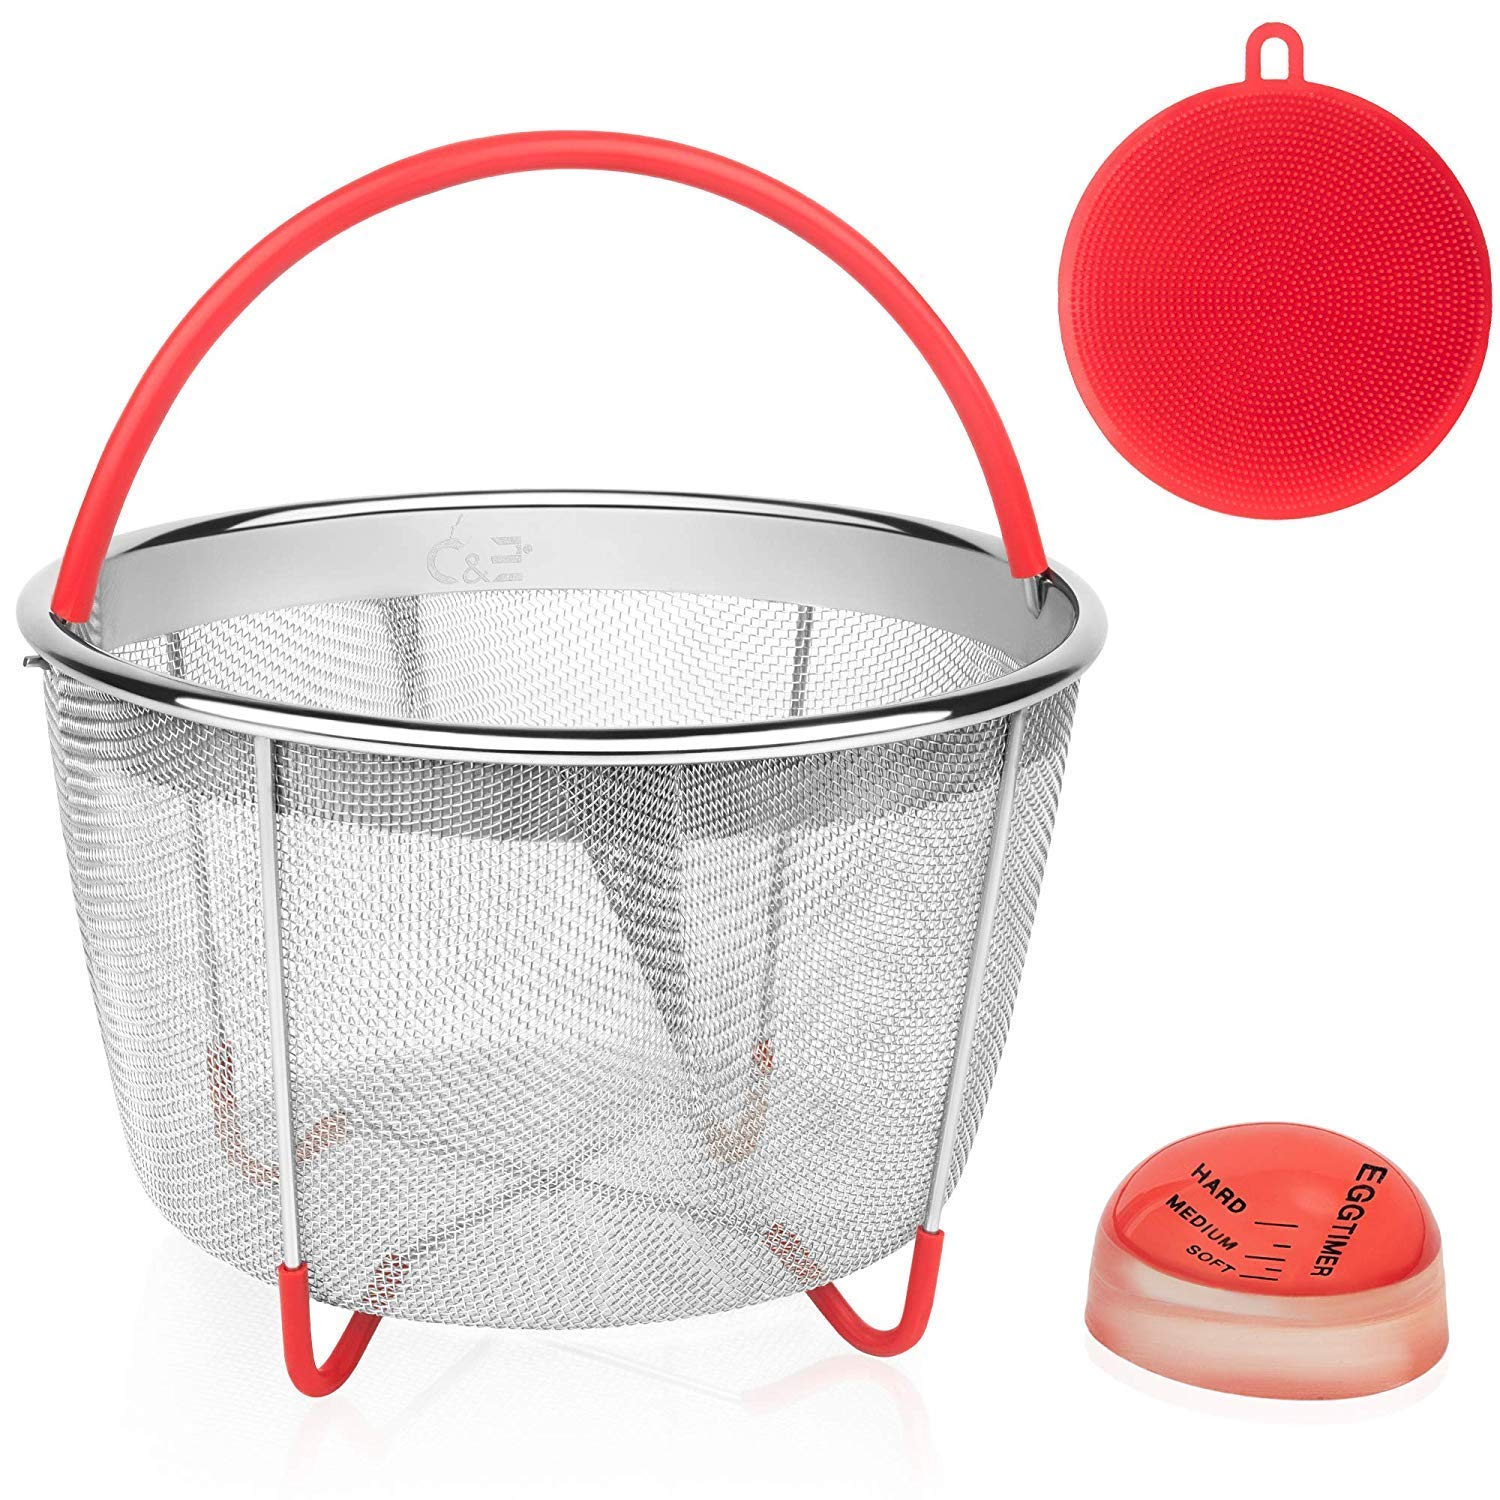 Steamer Basket for 6Qt & 8Qt Instant Pot | Stainless Steel Strainer Insert with Handles for Pressure Cooker | Perfect for Pasta, Vegetables, Rice or Meats | B0NUS Silicone Sponge + Egg Timer